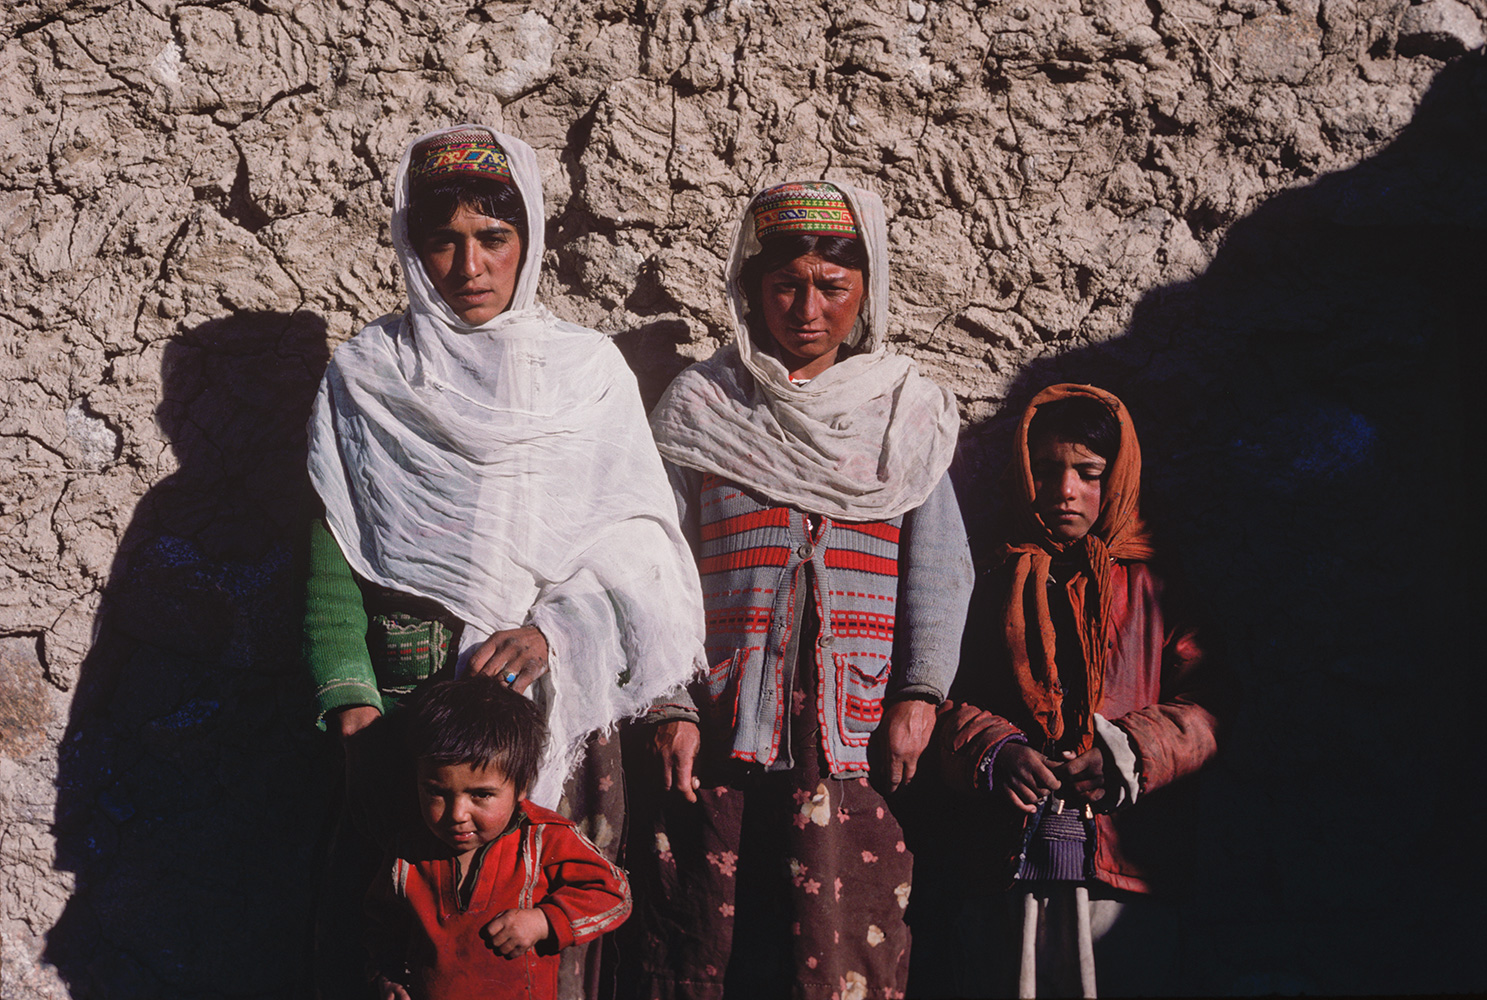 Shimshali Women at Shuwert